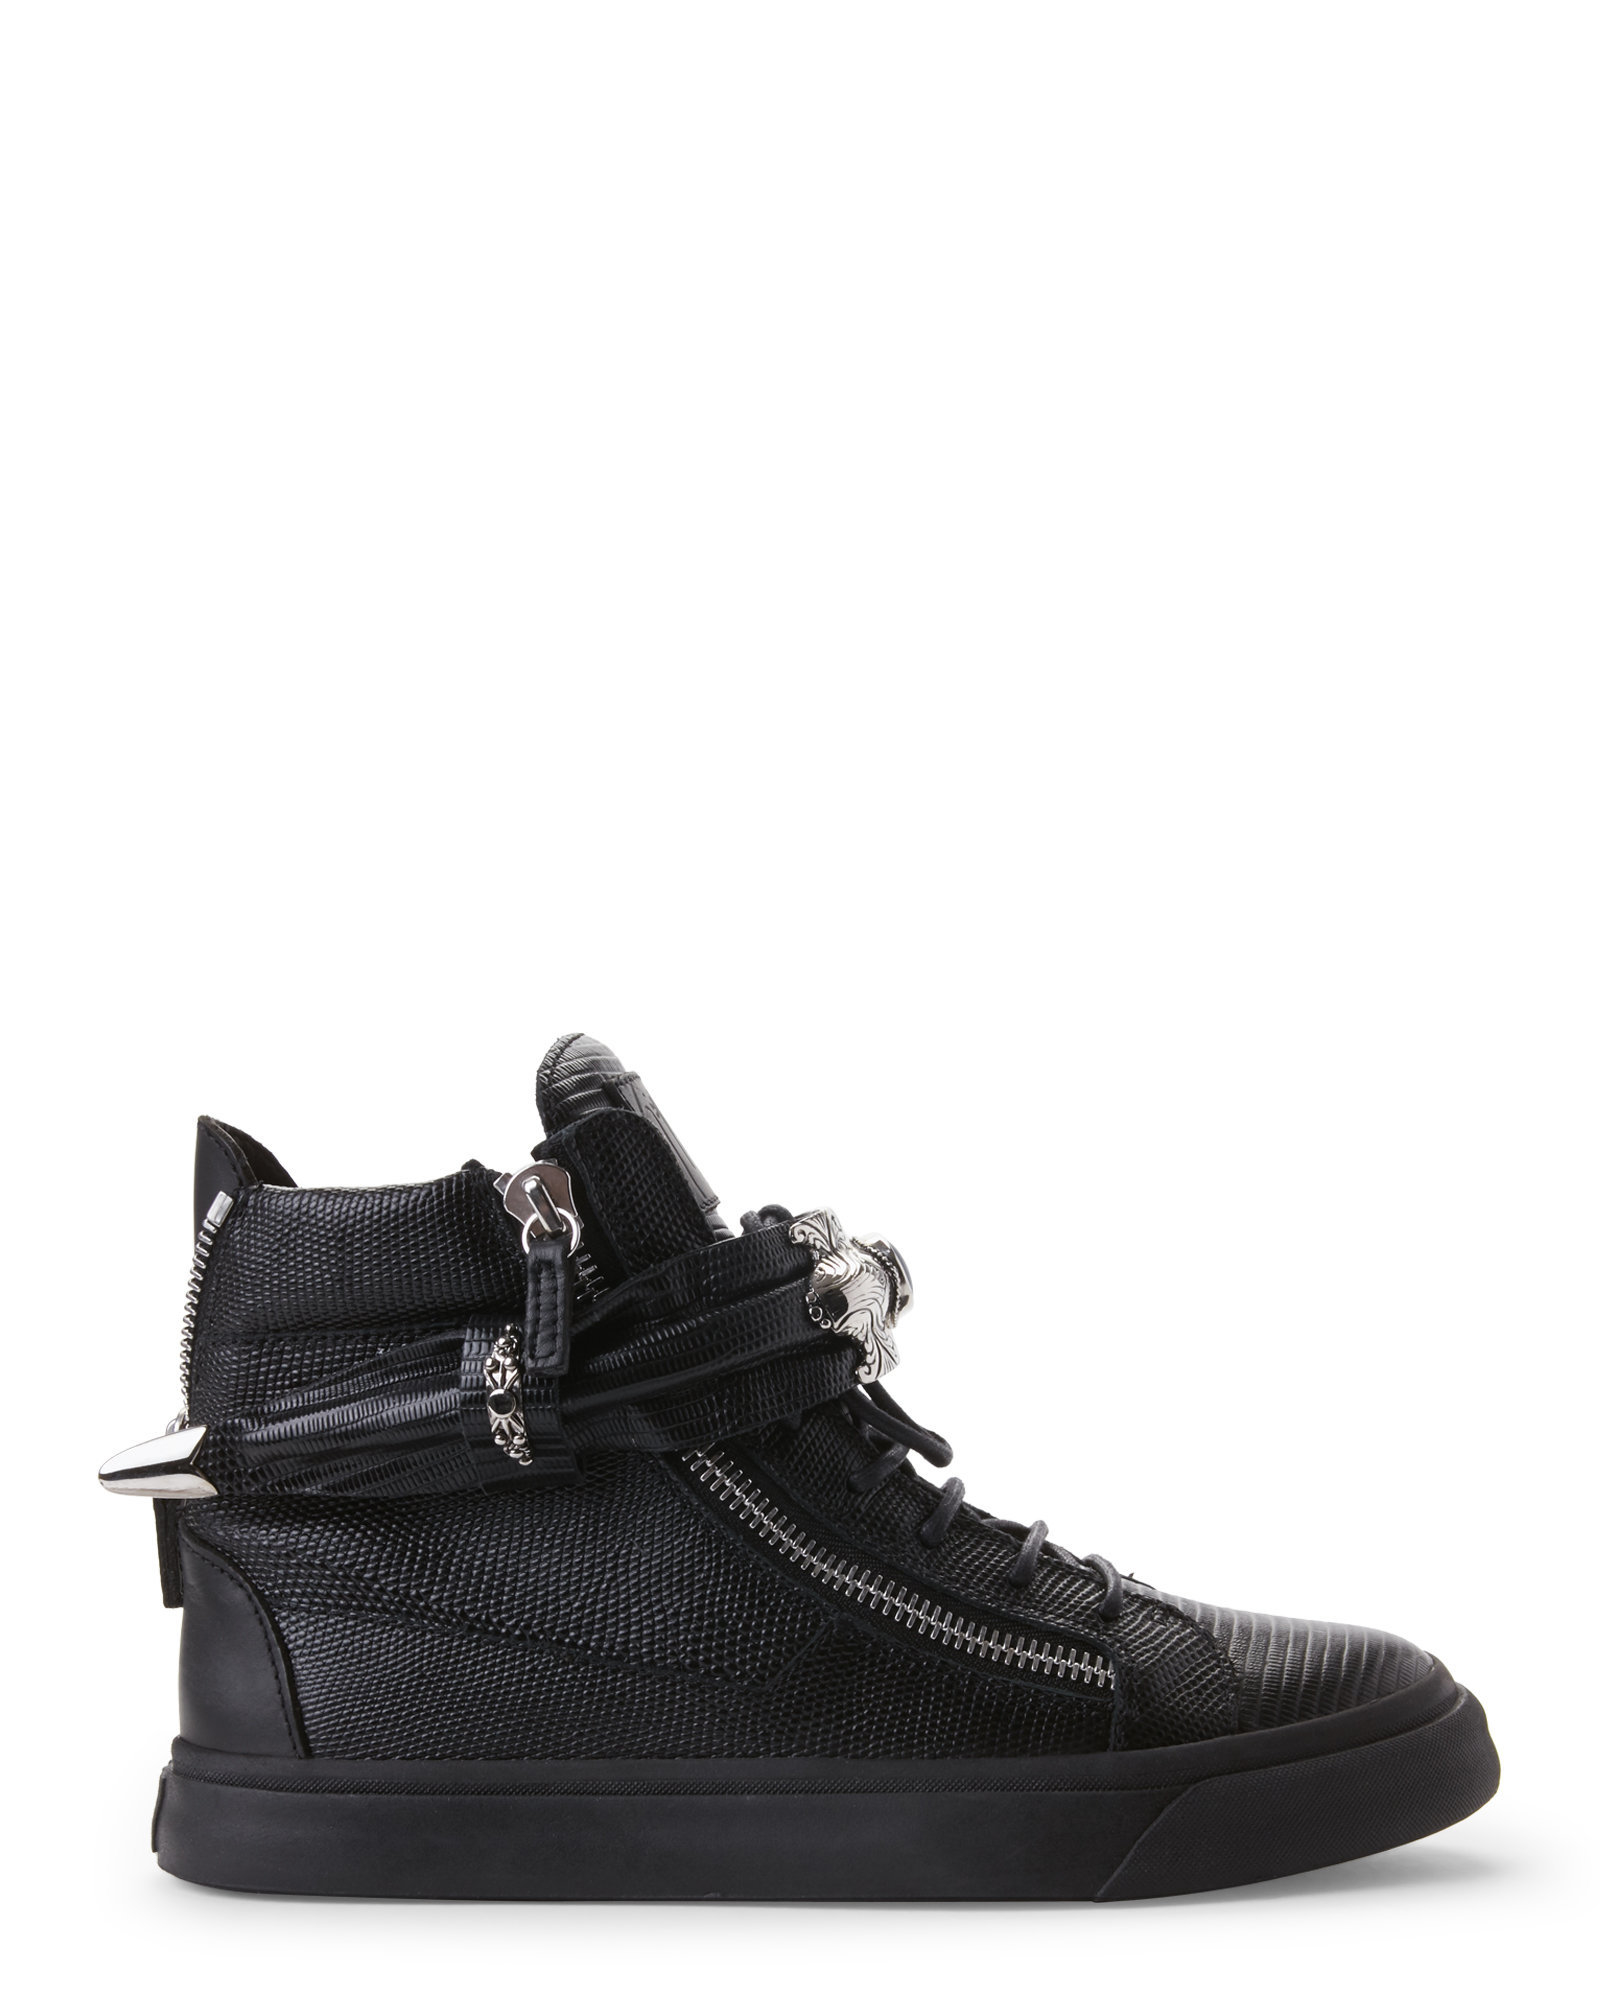 Giuseppe zanotti Ssense Exclusive Black_Out Matte Leather ...